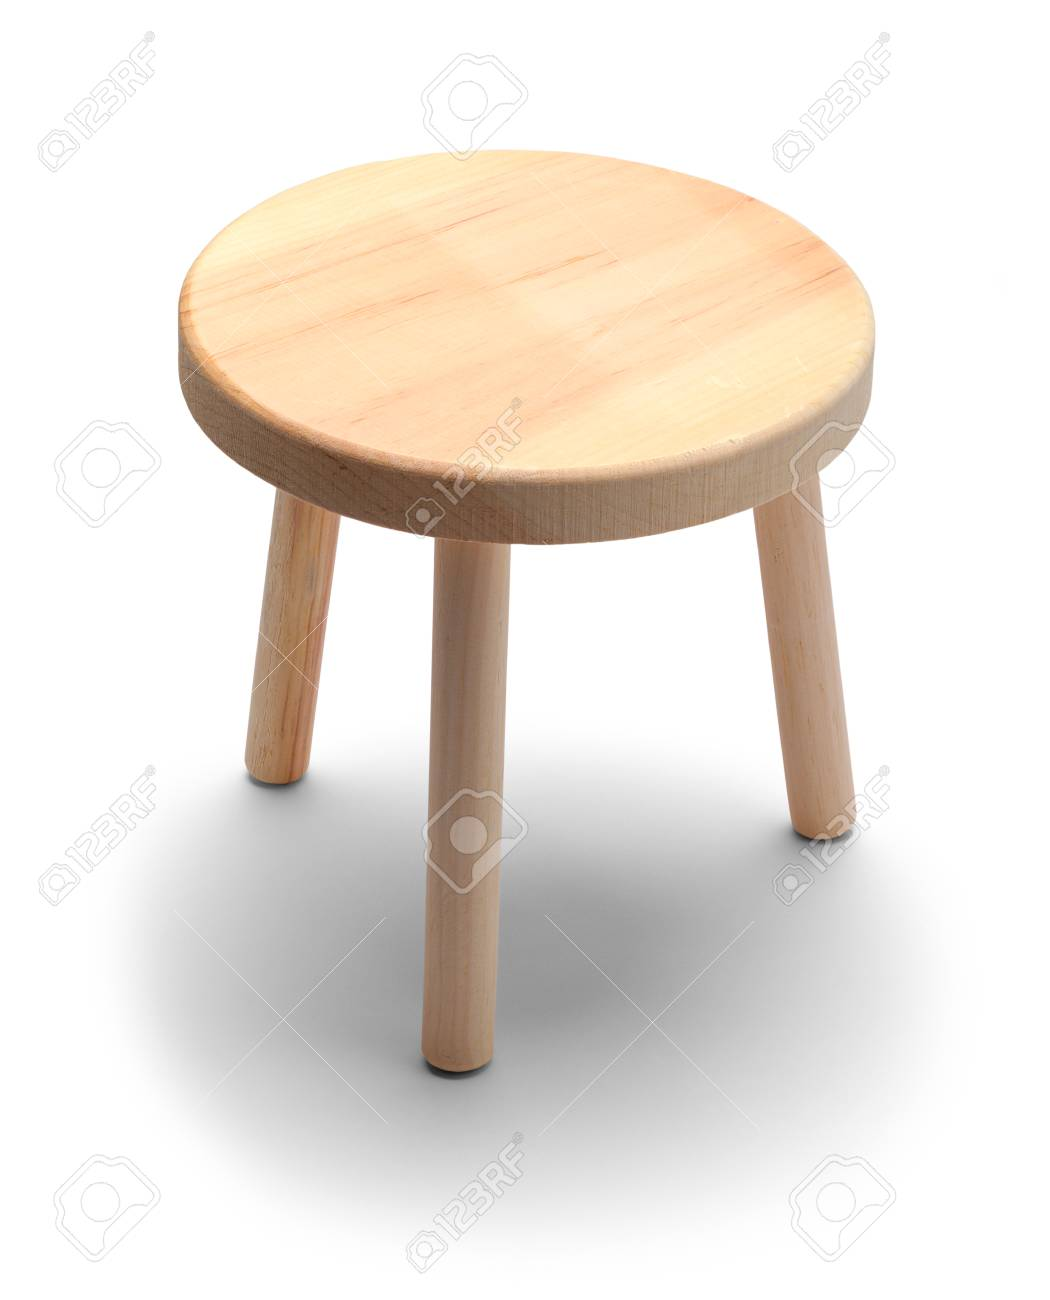 Fine Small Round Foot Stool Isolated On A White Background Beatyapartments Chair Design Images Beatyapartmentscom